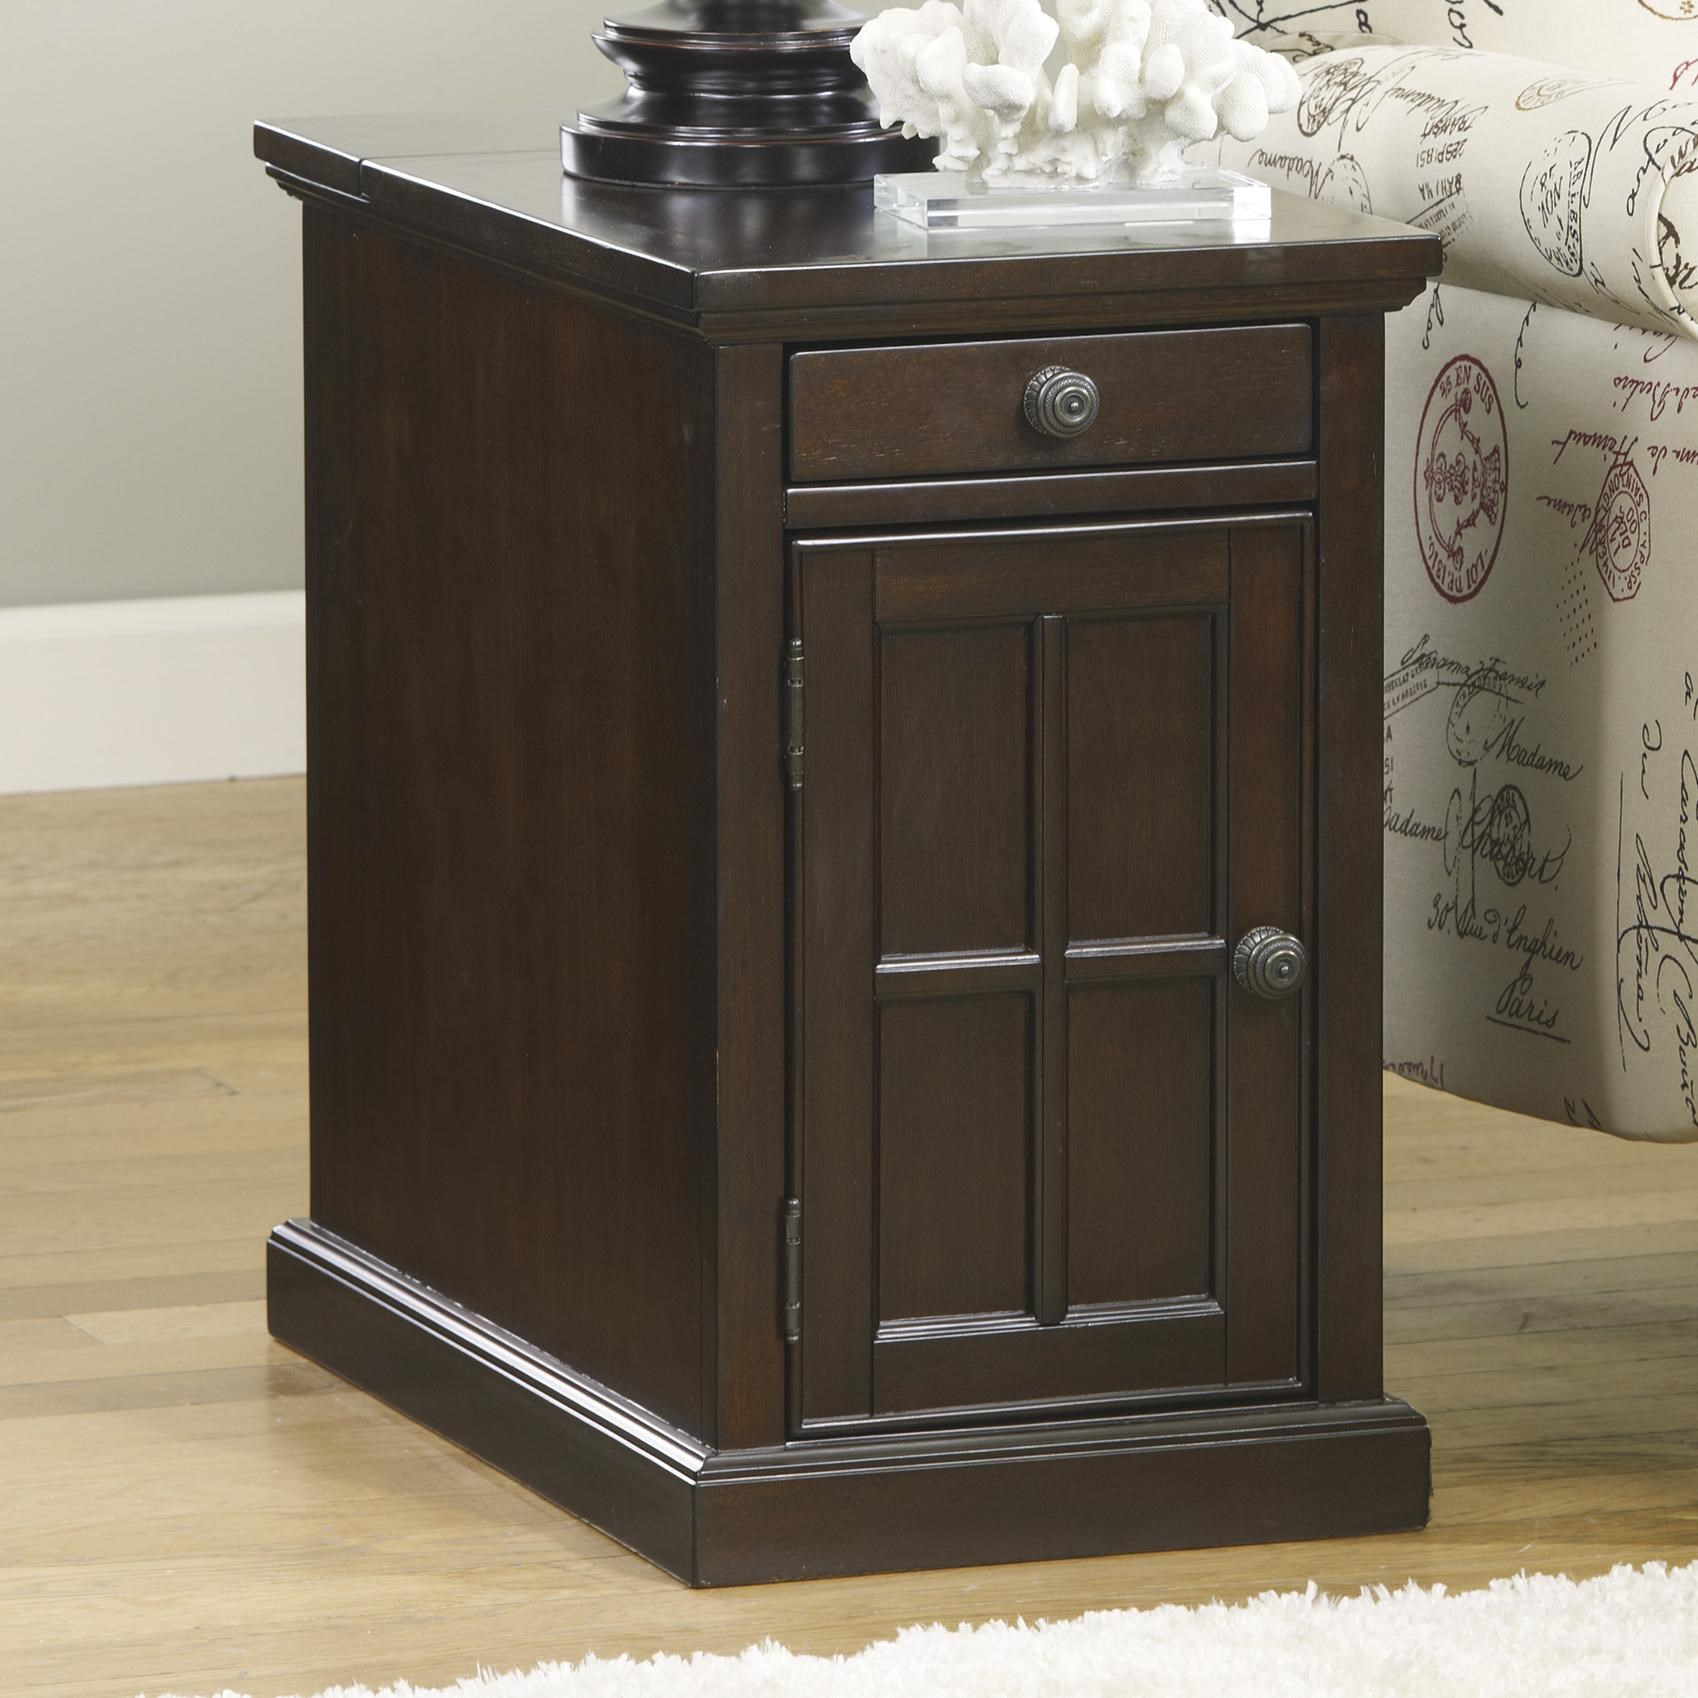 End Table For Living Room Laflorn Chair Side End Table With Power Outlets Pull Out Shelf By Signature Design By Ashley At Royal Furniture